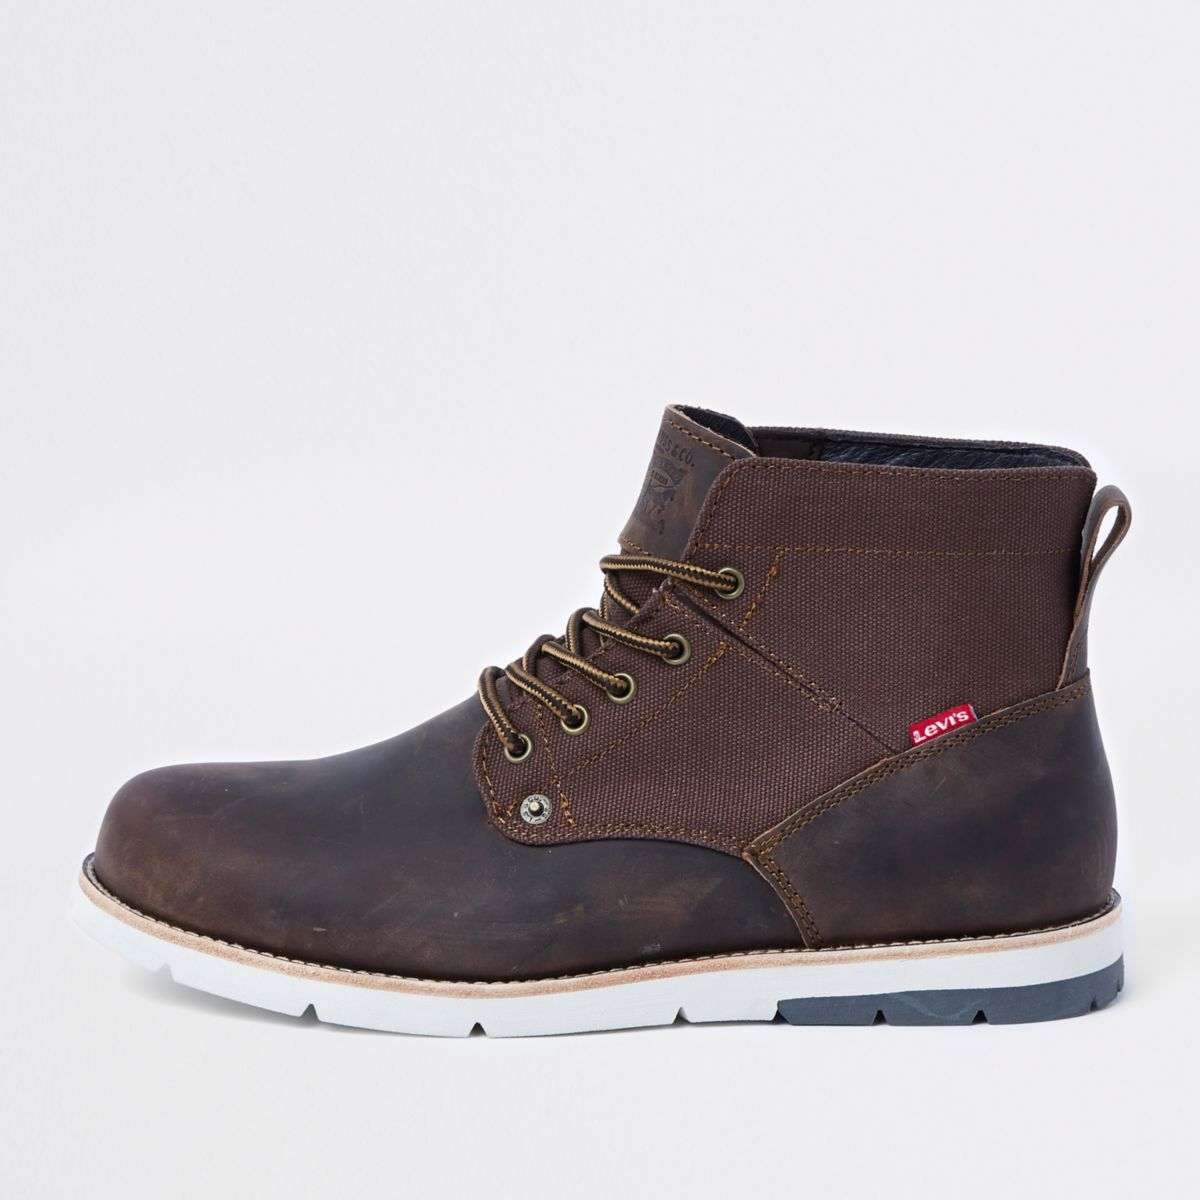 Levi's dark brown leather lace-up work boots